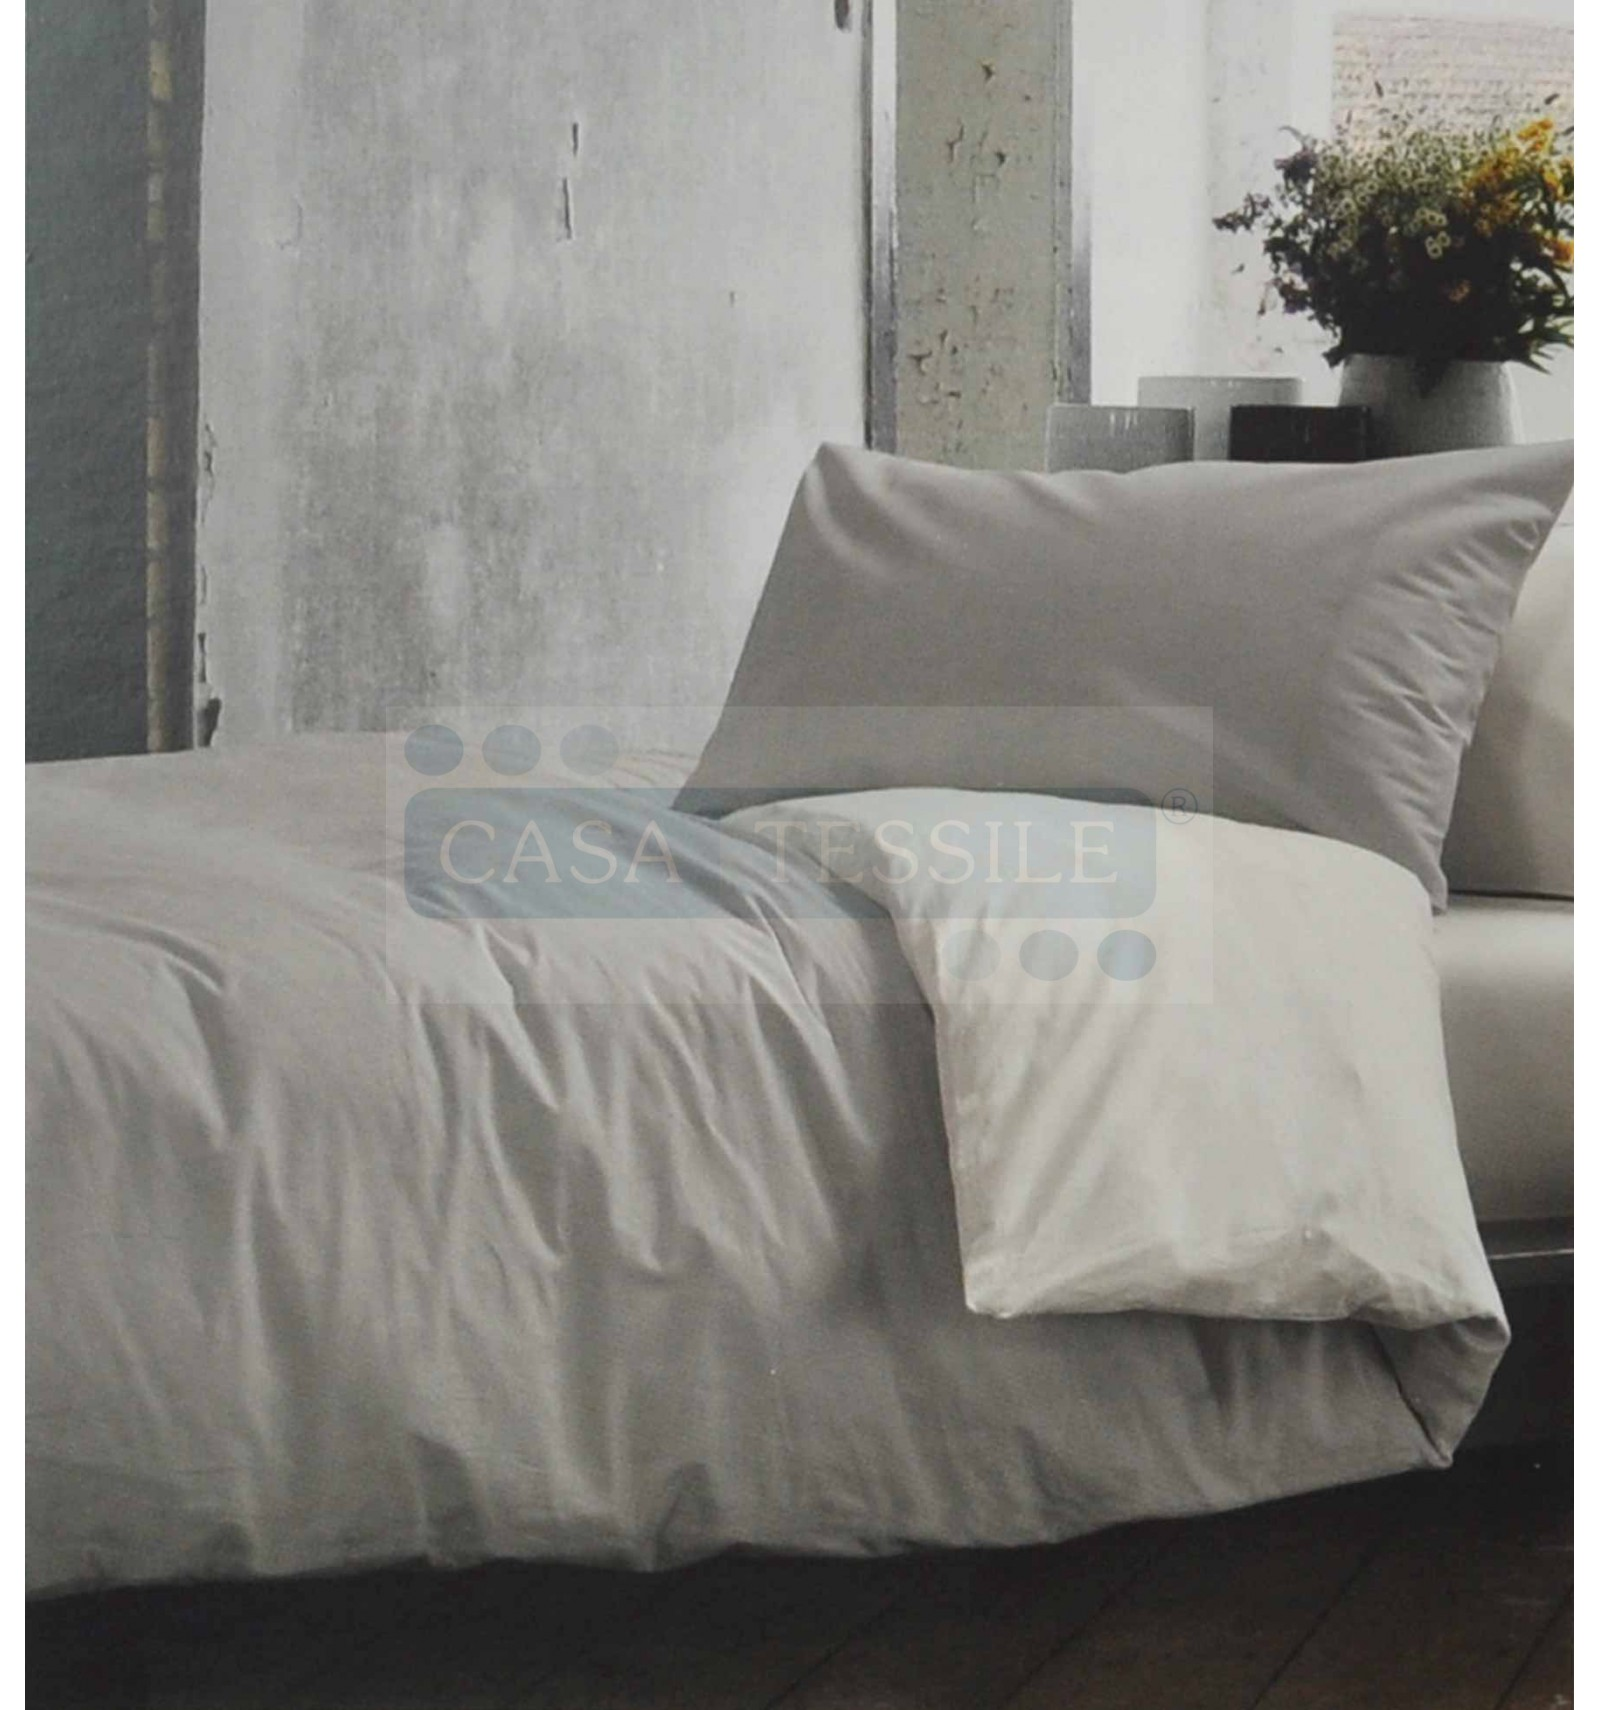 Copripiumino 200 X 200.Class Friends Duvet Cover 1 Bed 200 X 200 Cm Casa Tessile